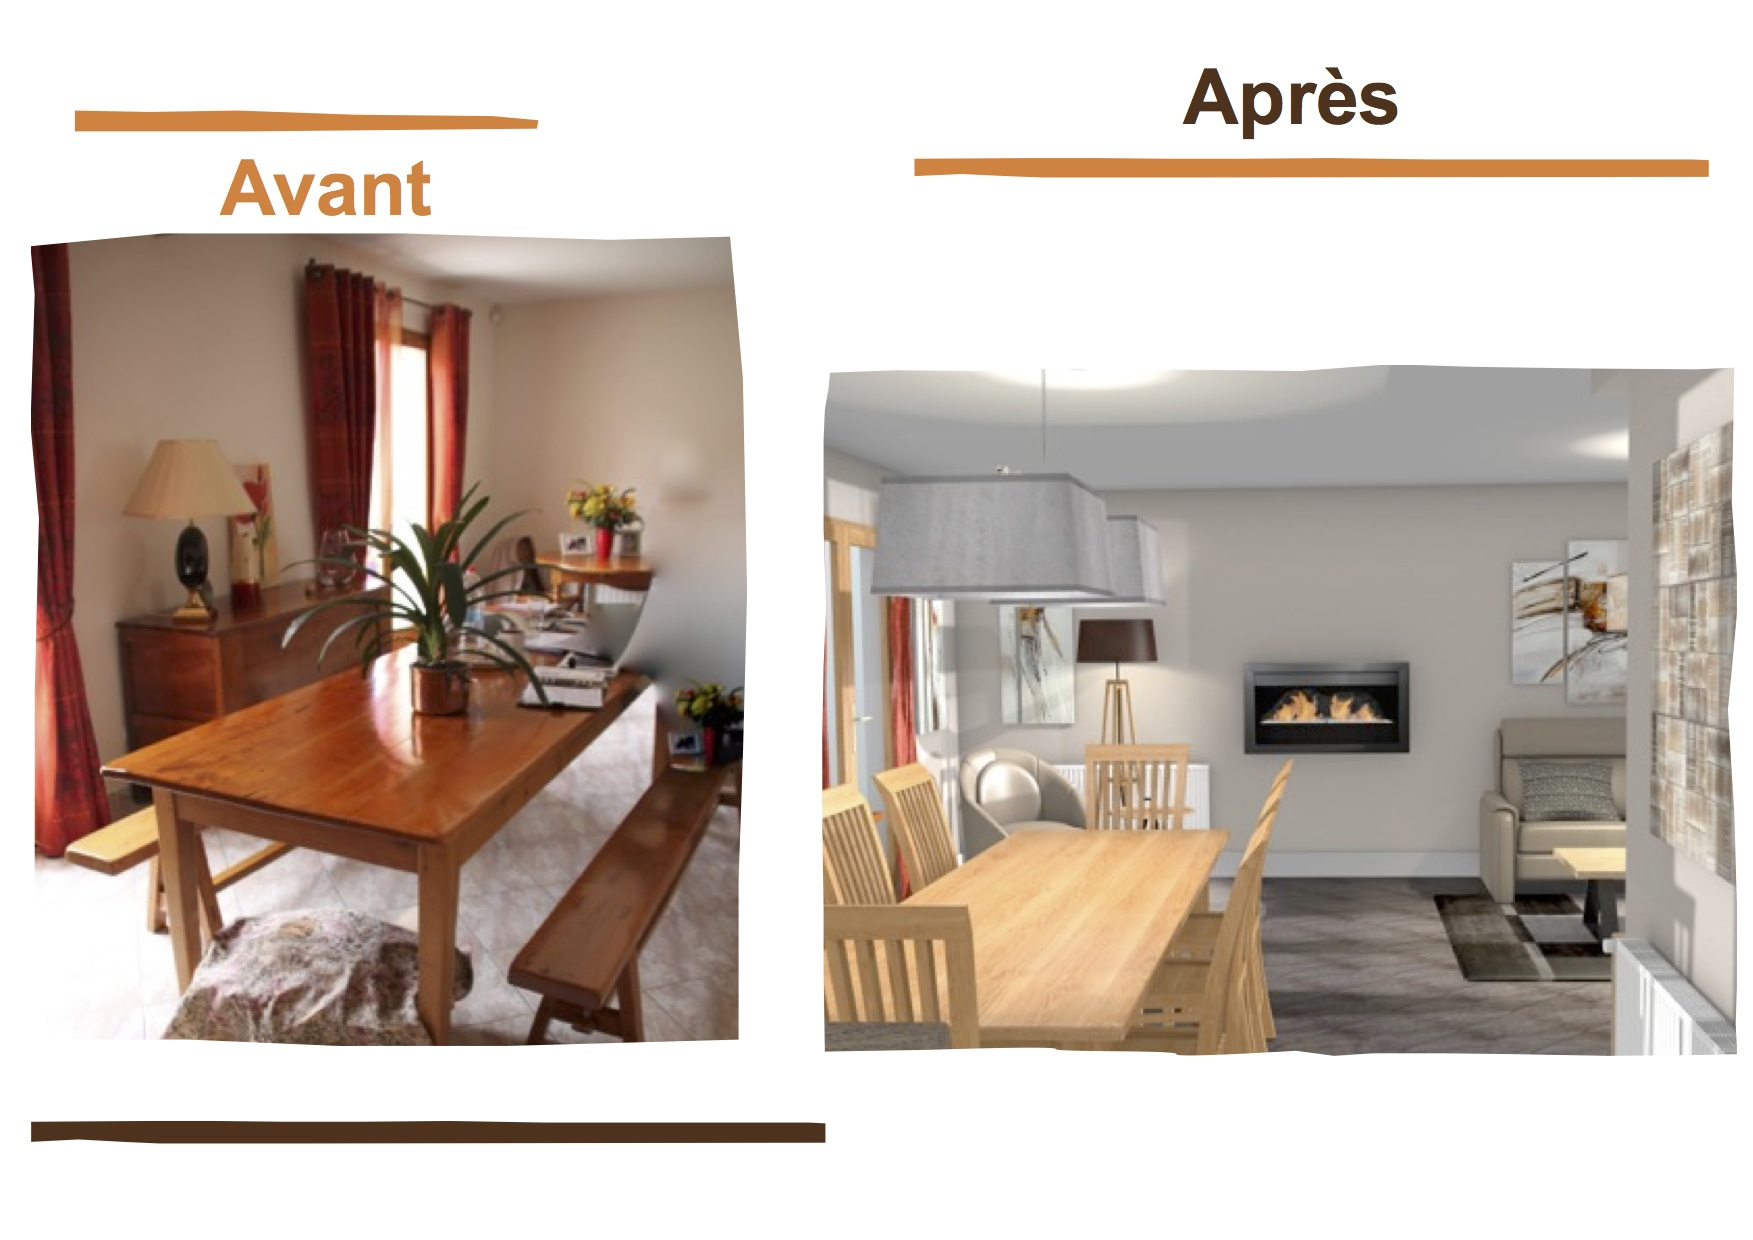 Agréable Home Staging Avant Apres Photos #8: Avant Apres Mitry